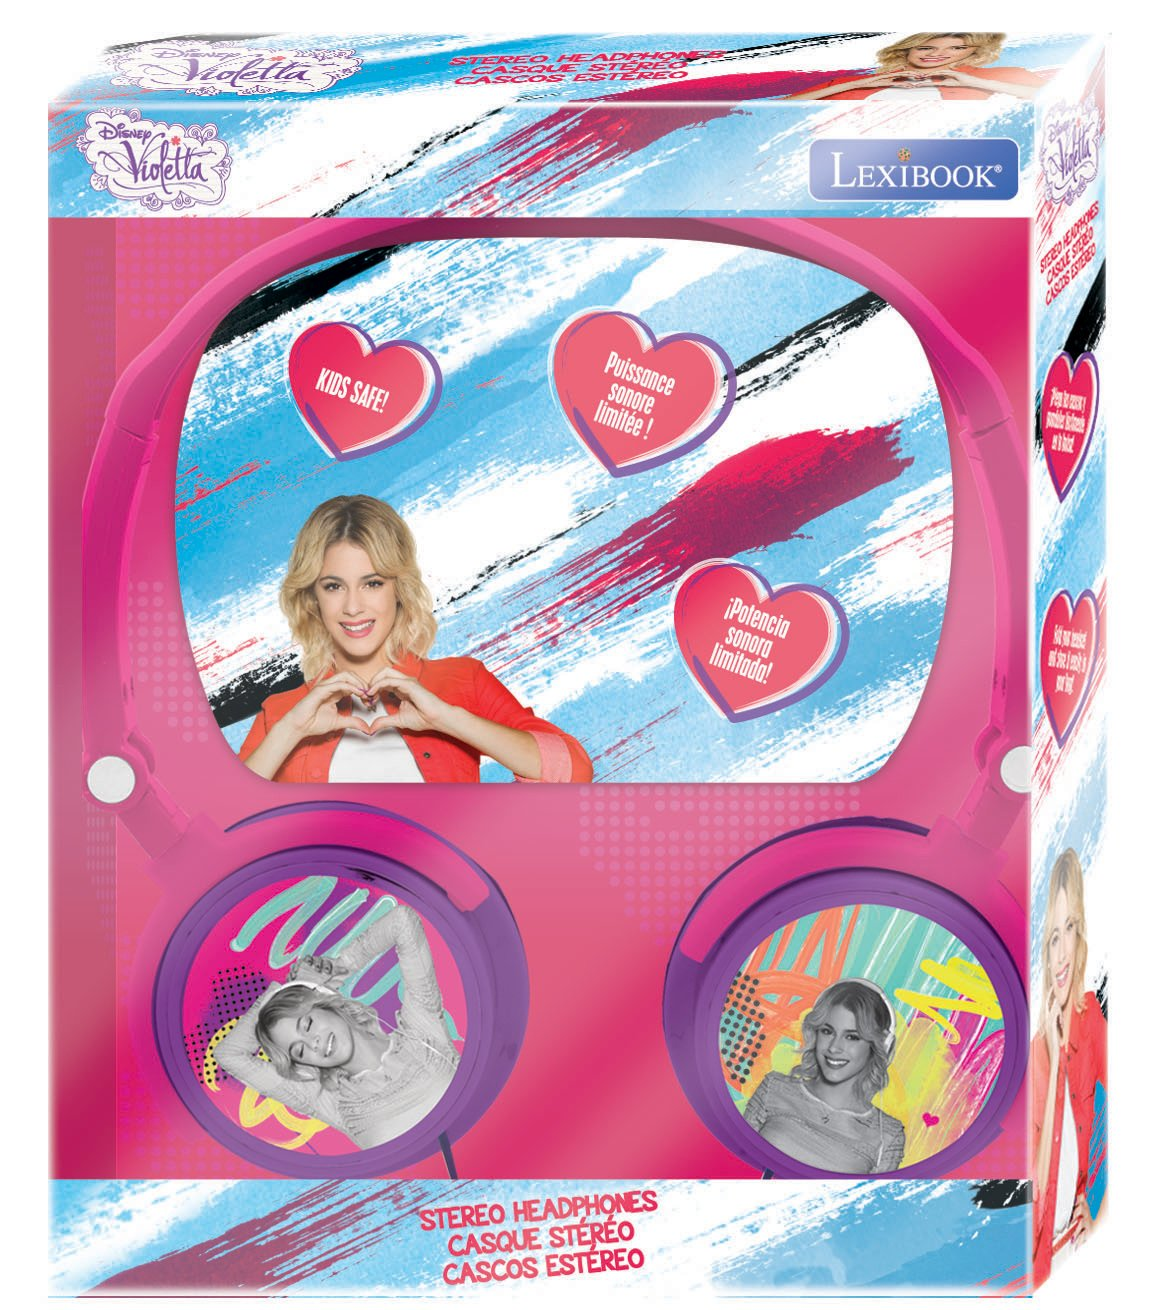 LEXiBOOK Disney Violetta Stereo Headphone, Kids Safe, Foldable and Adjustable, Pink / Purple, HP010VI by LEXiBOOK (Image #4)